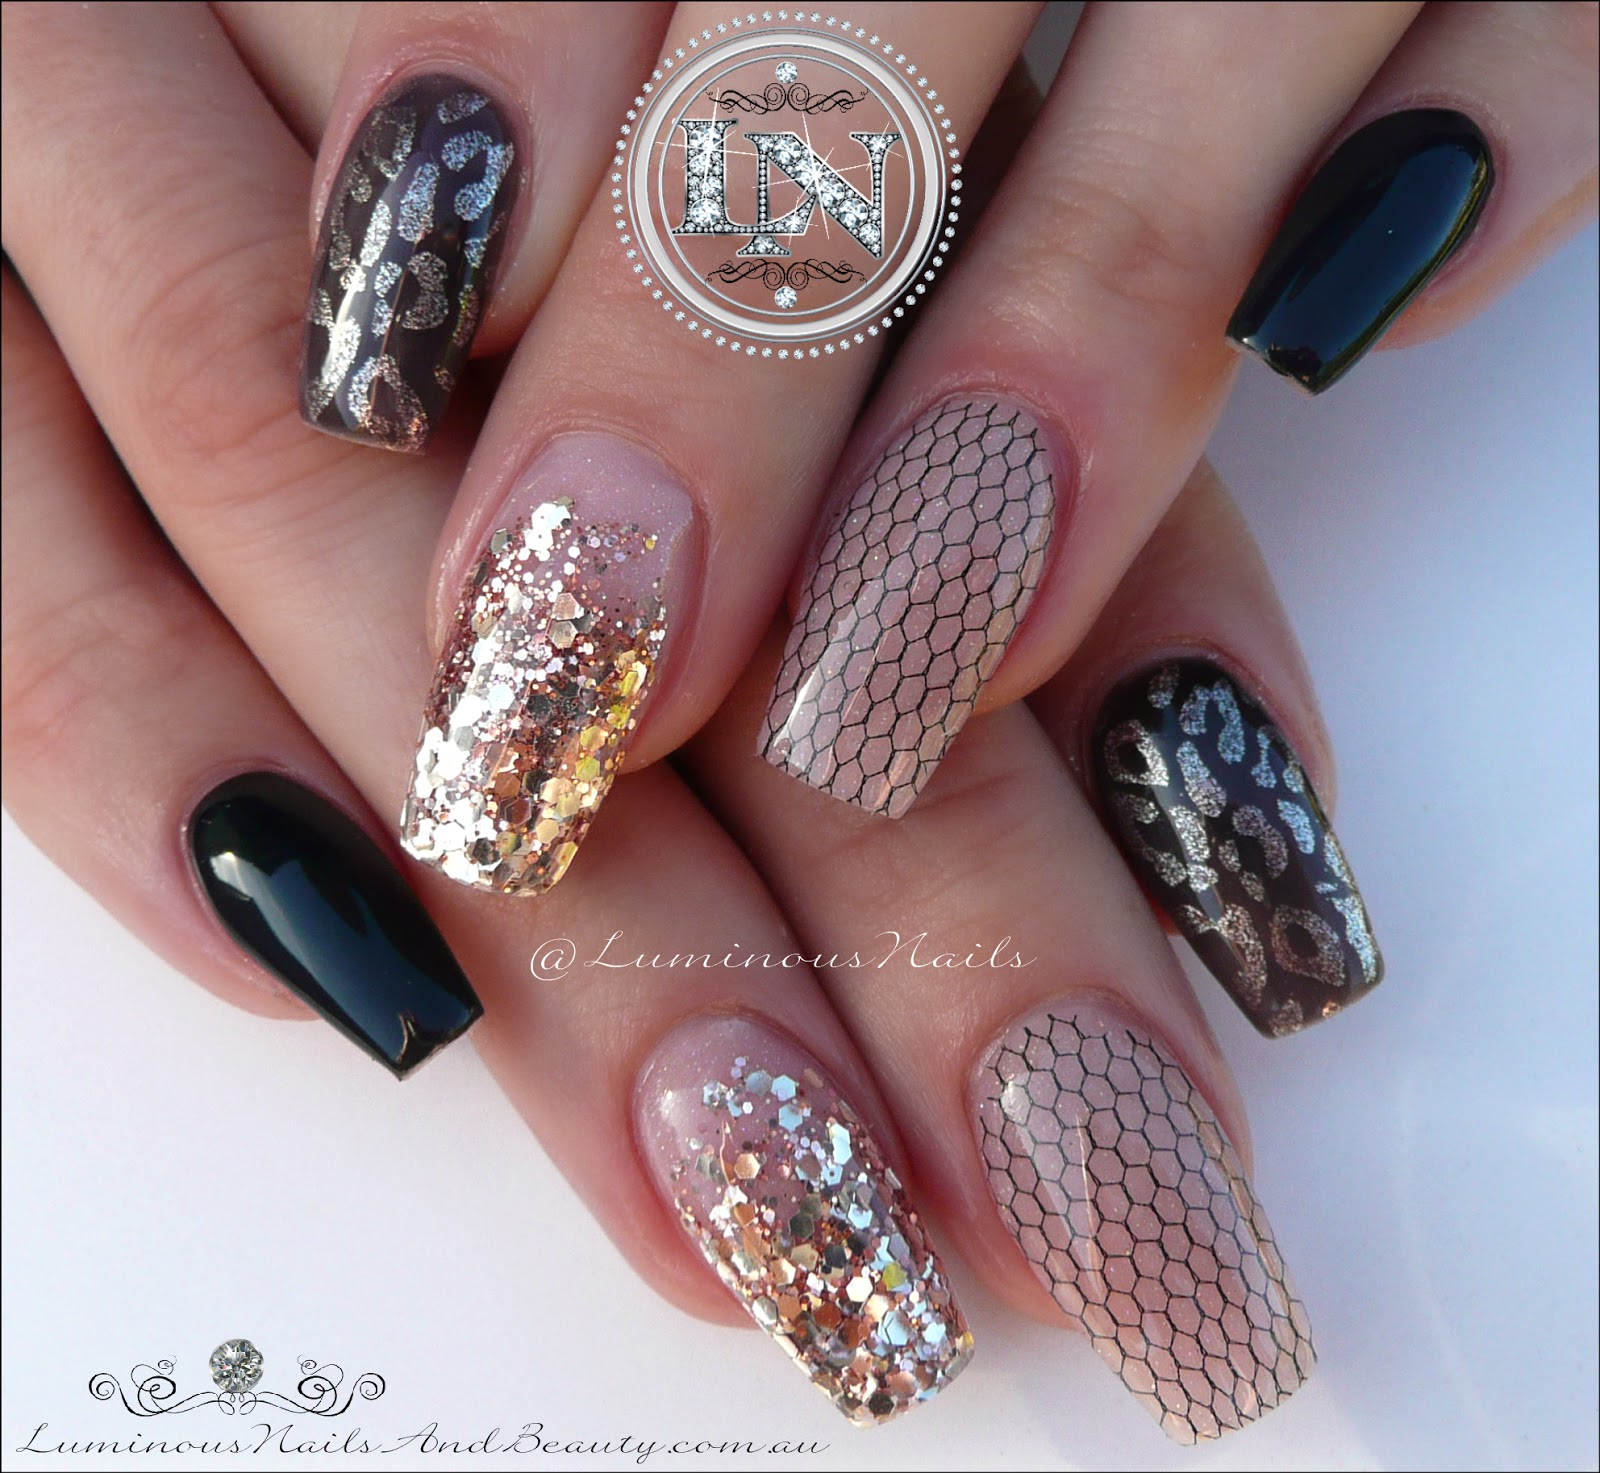 Sculptured Acrylic with Glitter heaven Pink Champagne Glitter Mix, Young  Nails Cover Pink, Crystal Glitter, Wonder Wall Art Screens, Black Netting,  ...